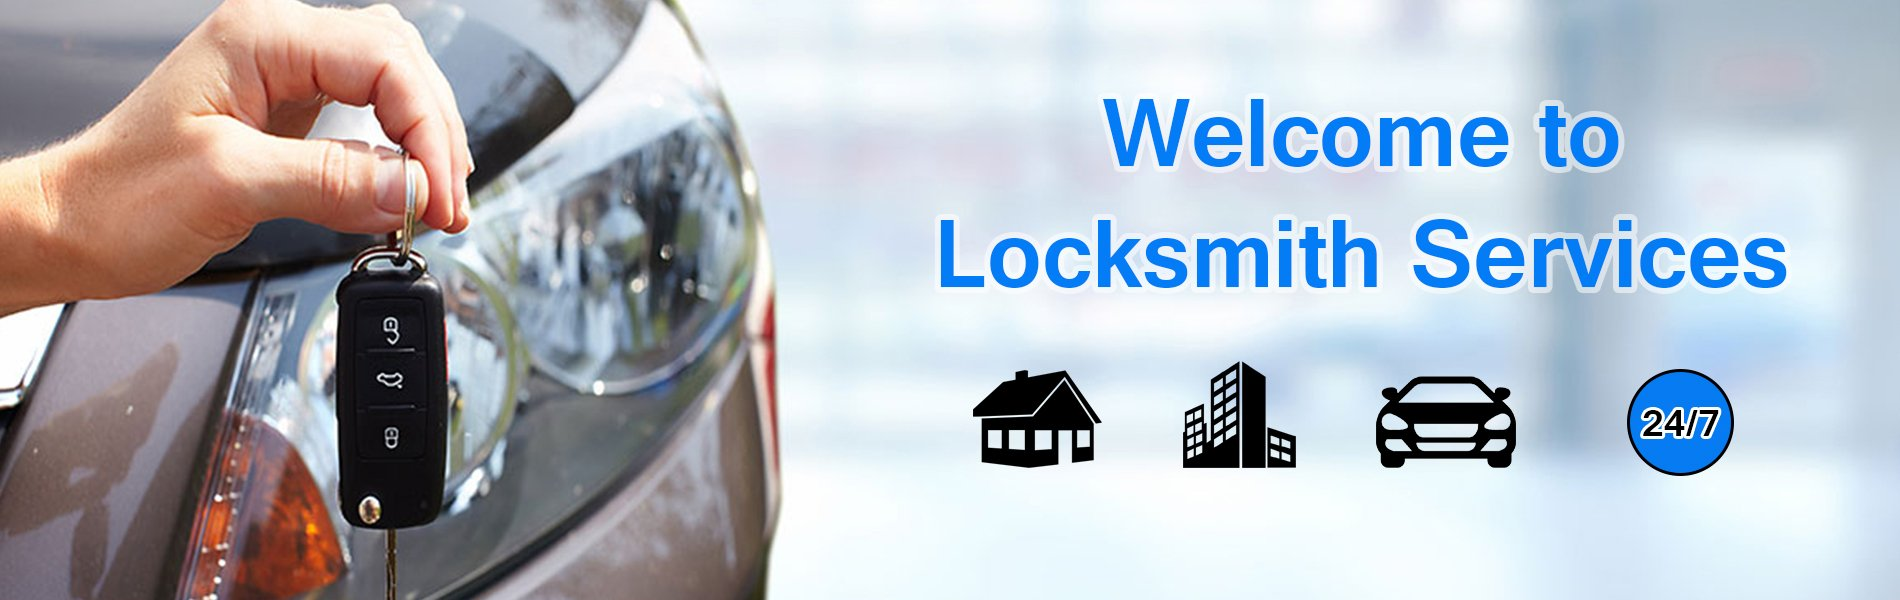 Bridgeville Locksmith Service, Bridgeville, PA 412-387-9458